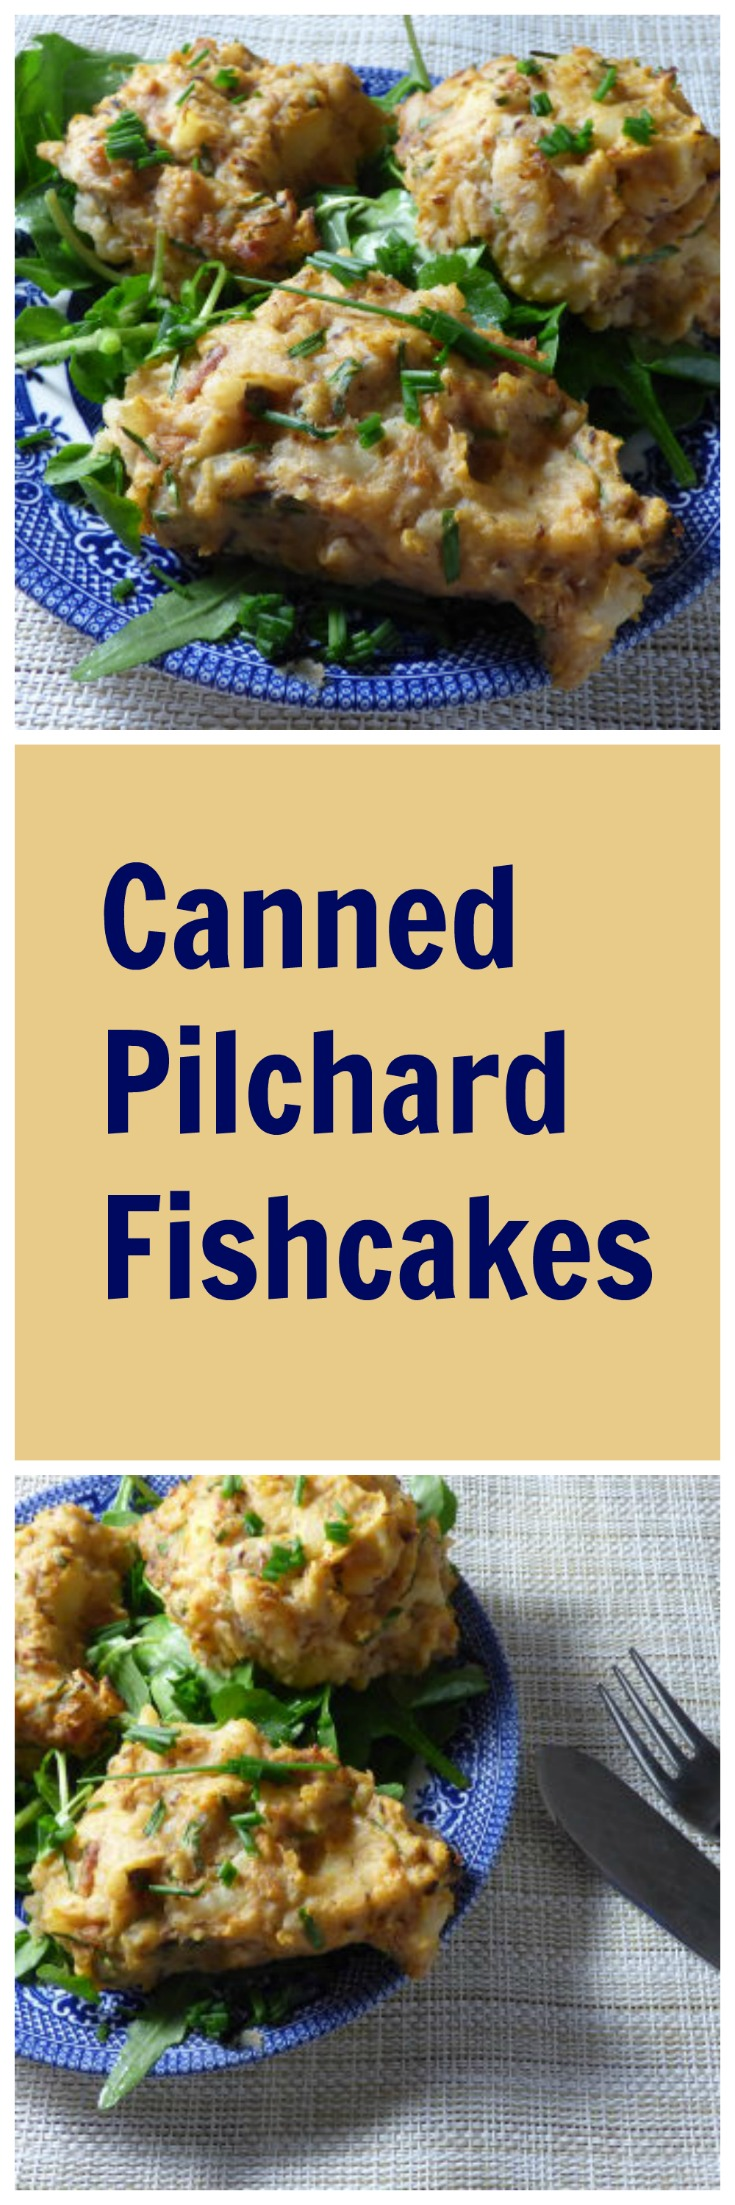 Canned Pilchard Fishcakes